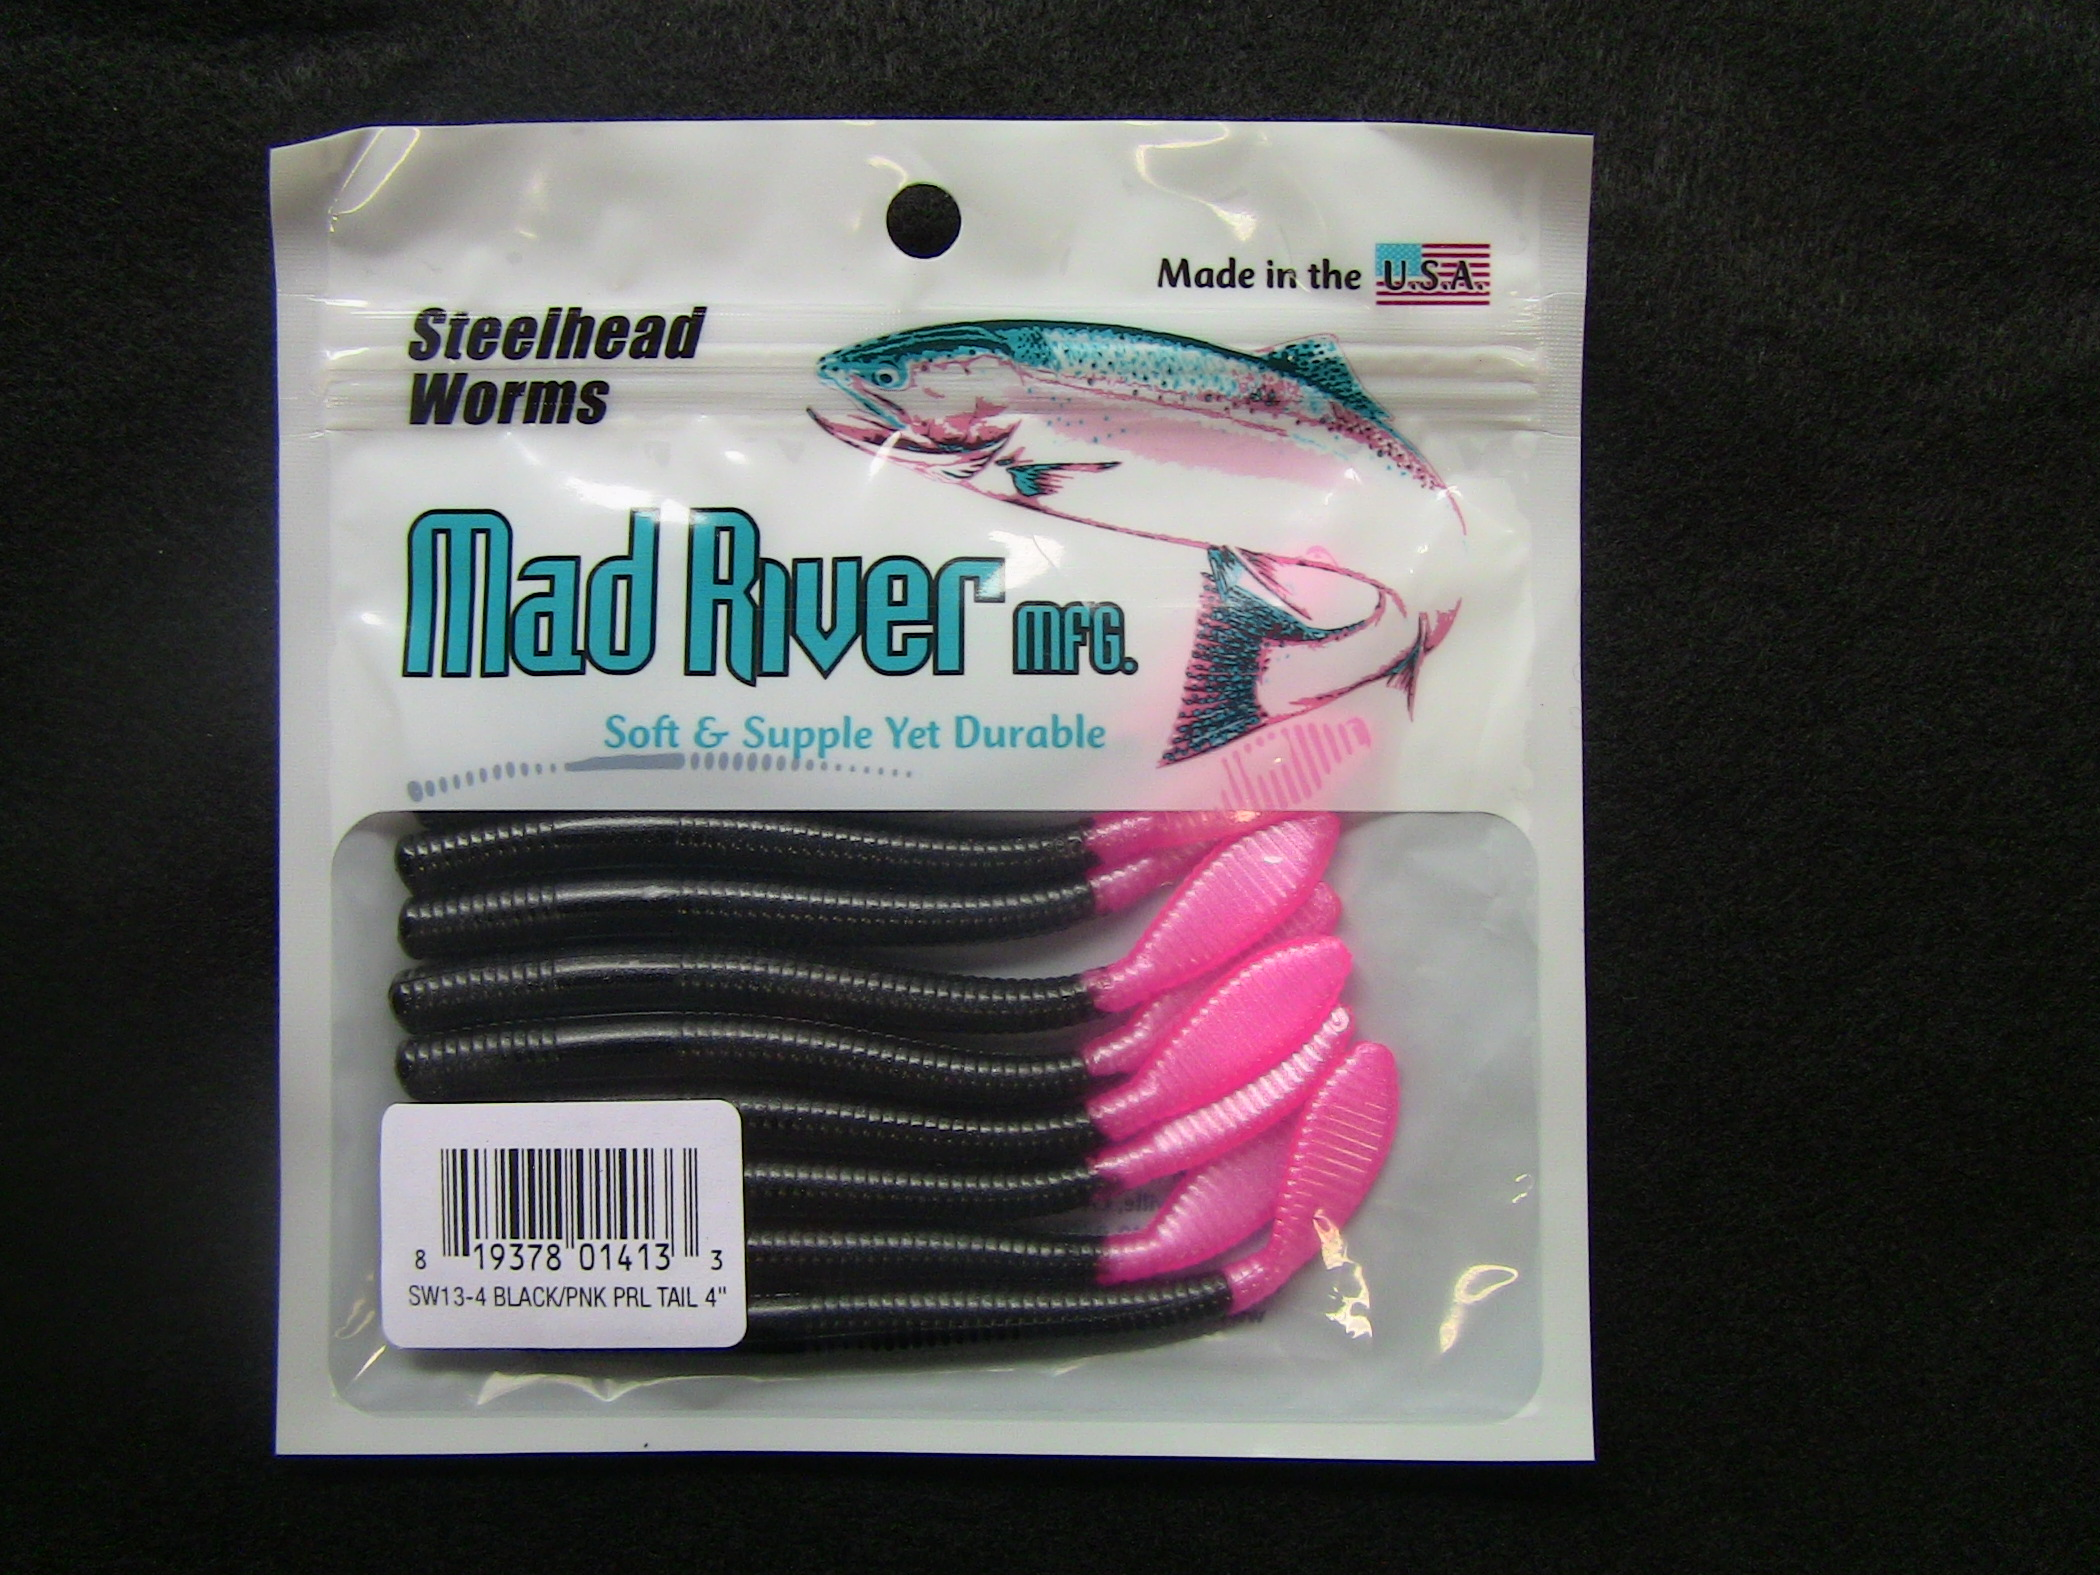 Steelhead Worms: Black/Pink Pearl Tail